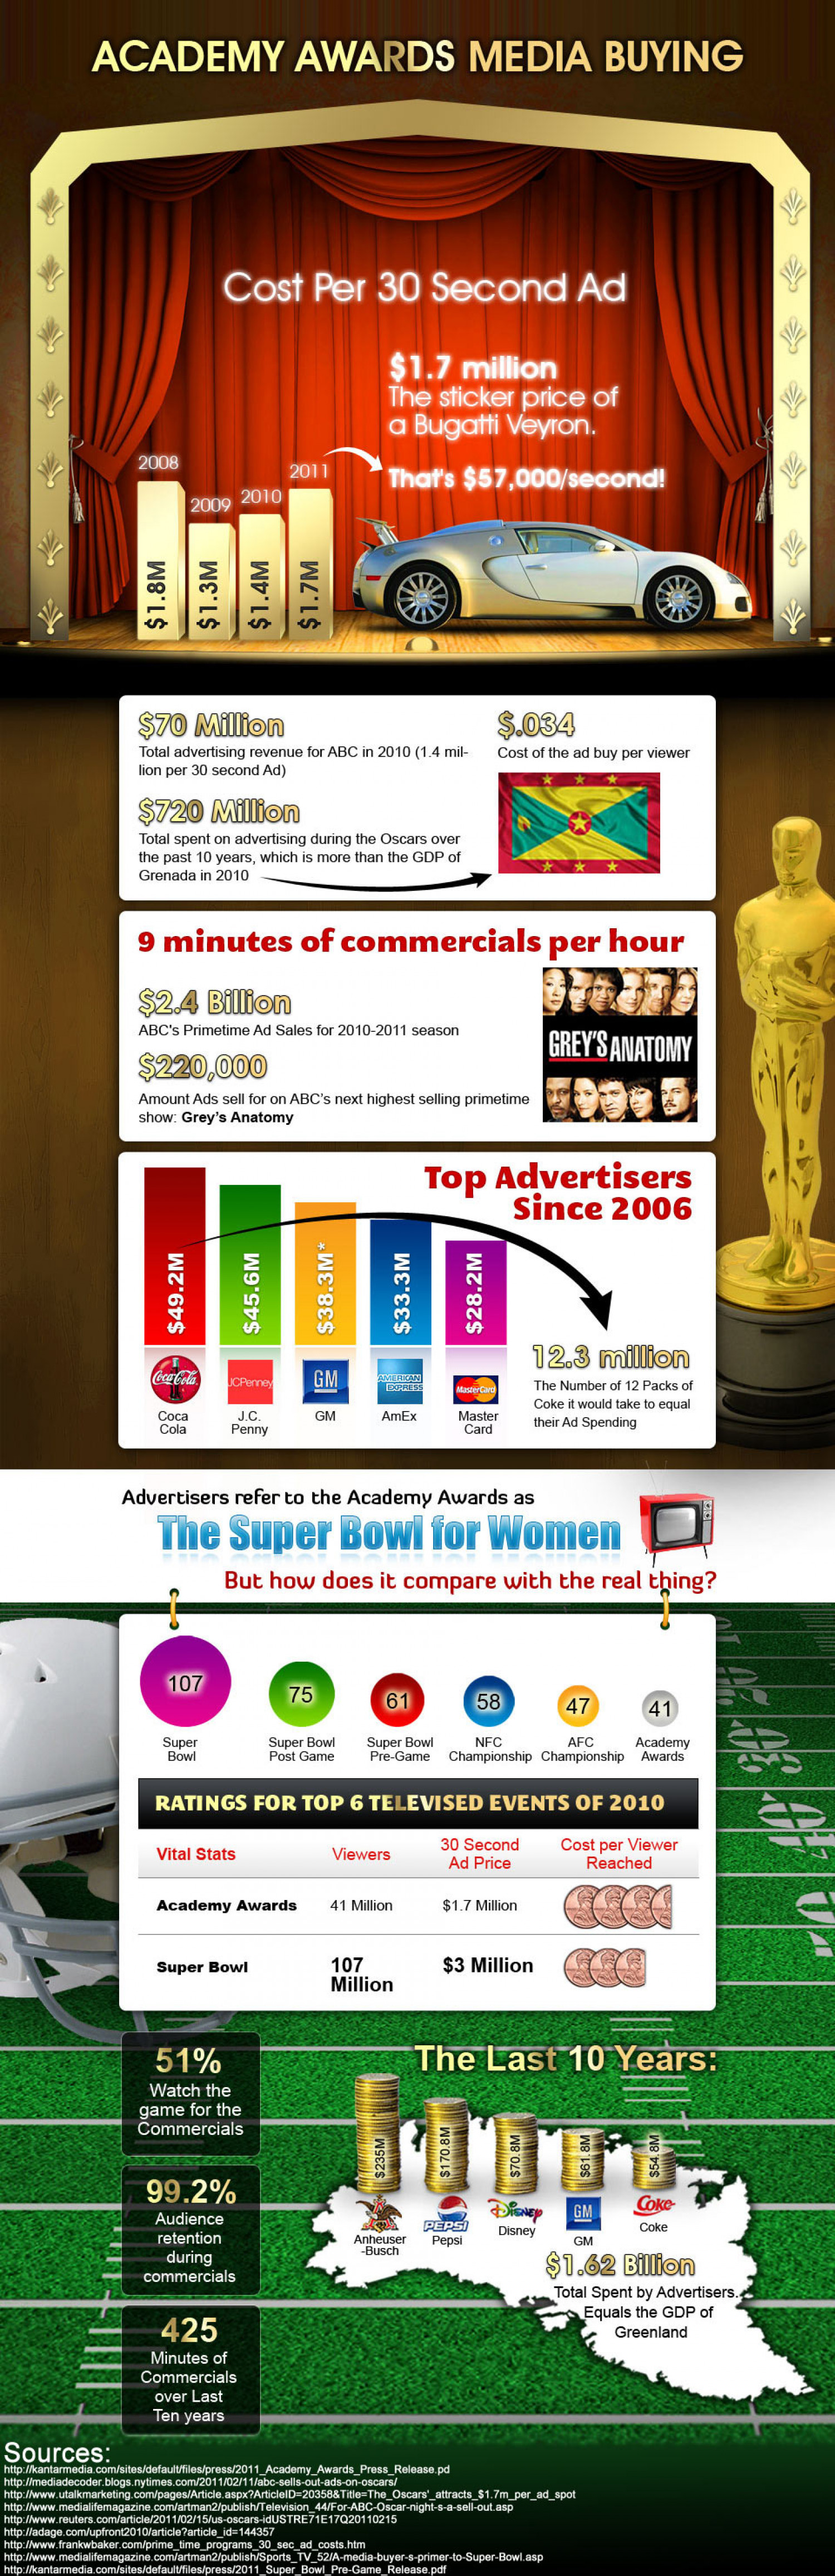 Media Buying and The Academy Awards Infographic